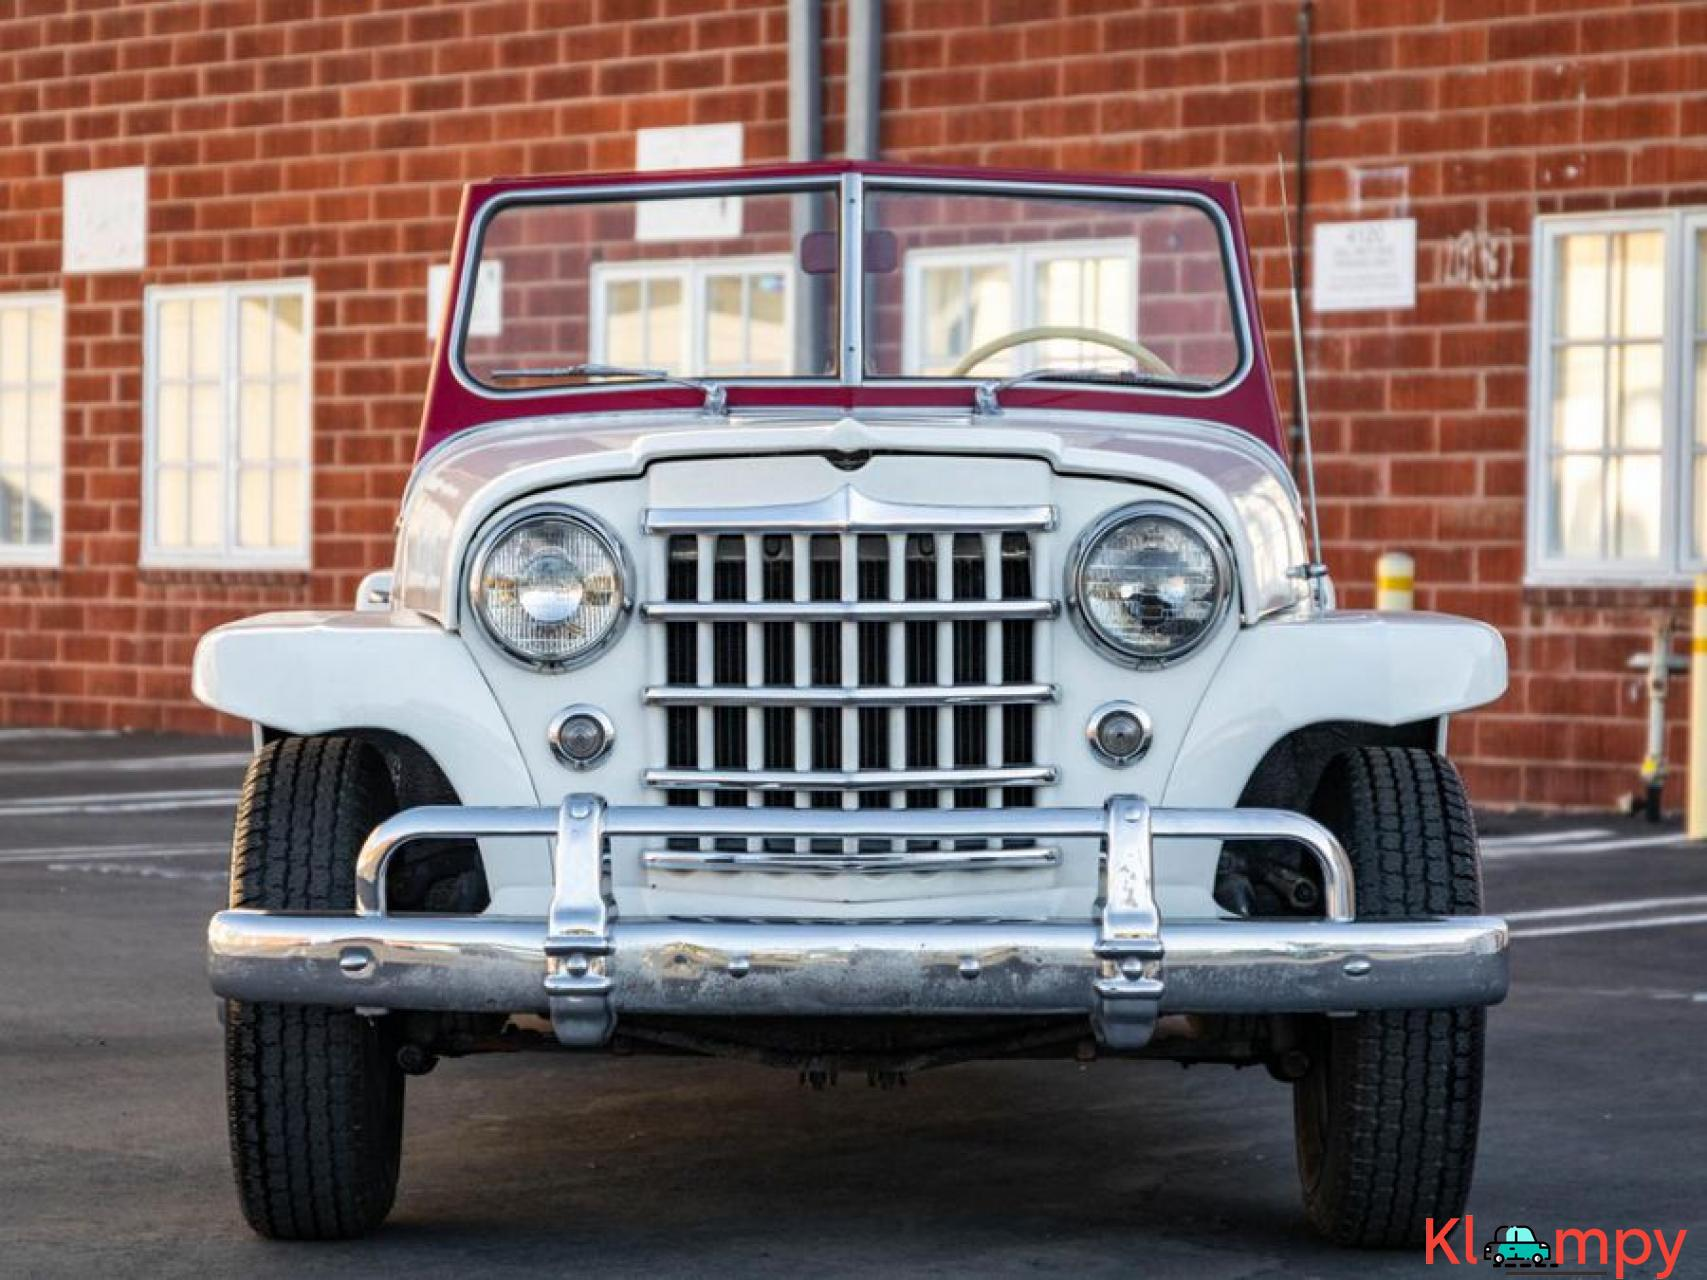 1951 Willys Jeepster Convertible 134.2 cu in 2.2 L - 2/17